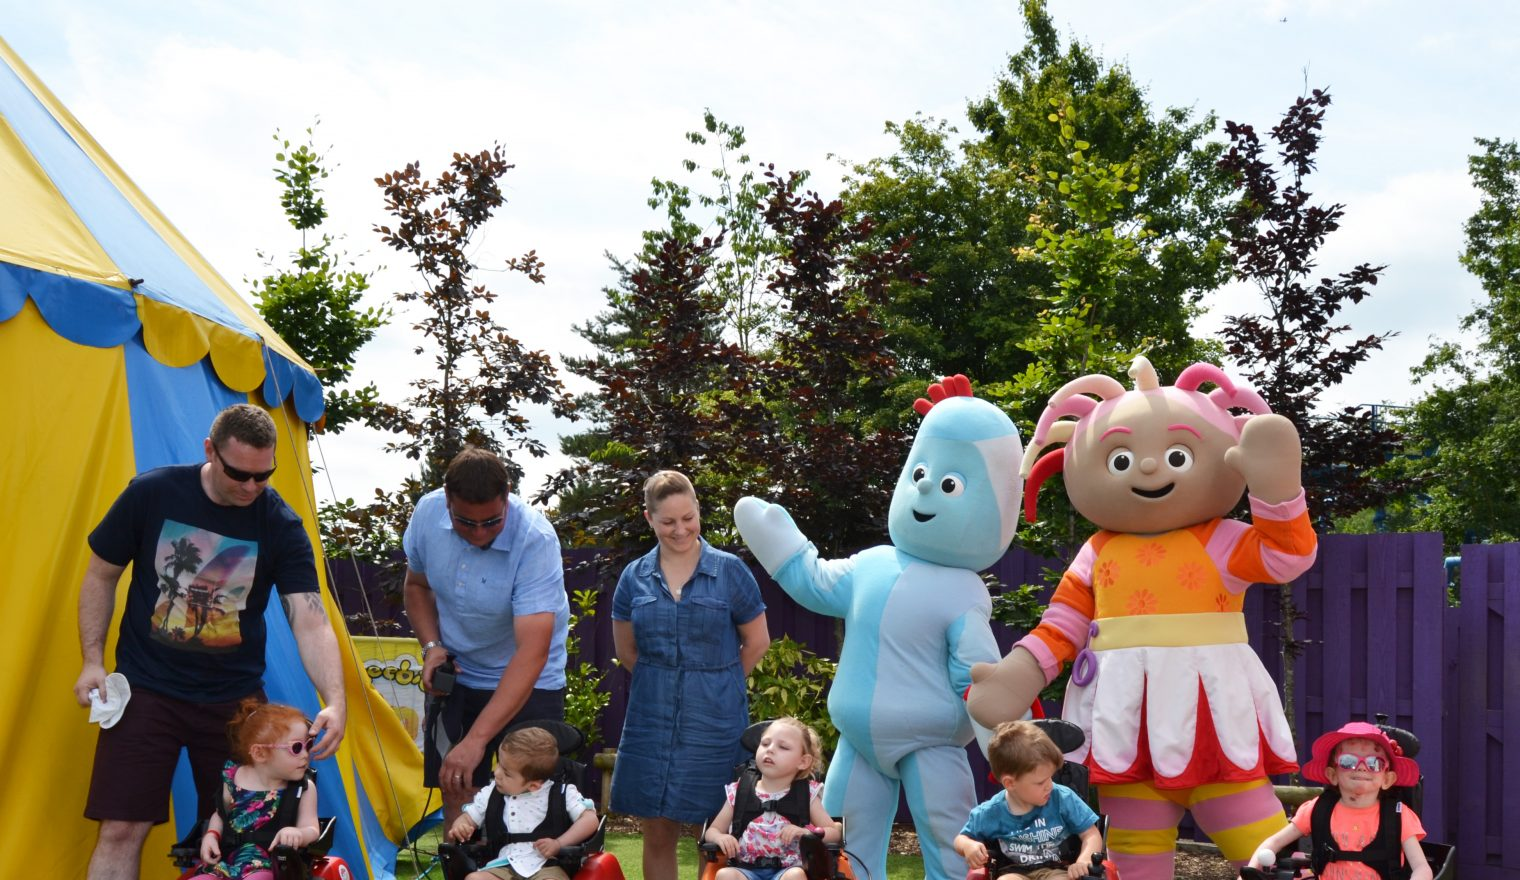 Five children in Wizzybug powered wheelchairs posing with characters at CBeebies Land